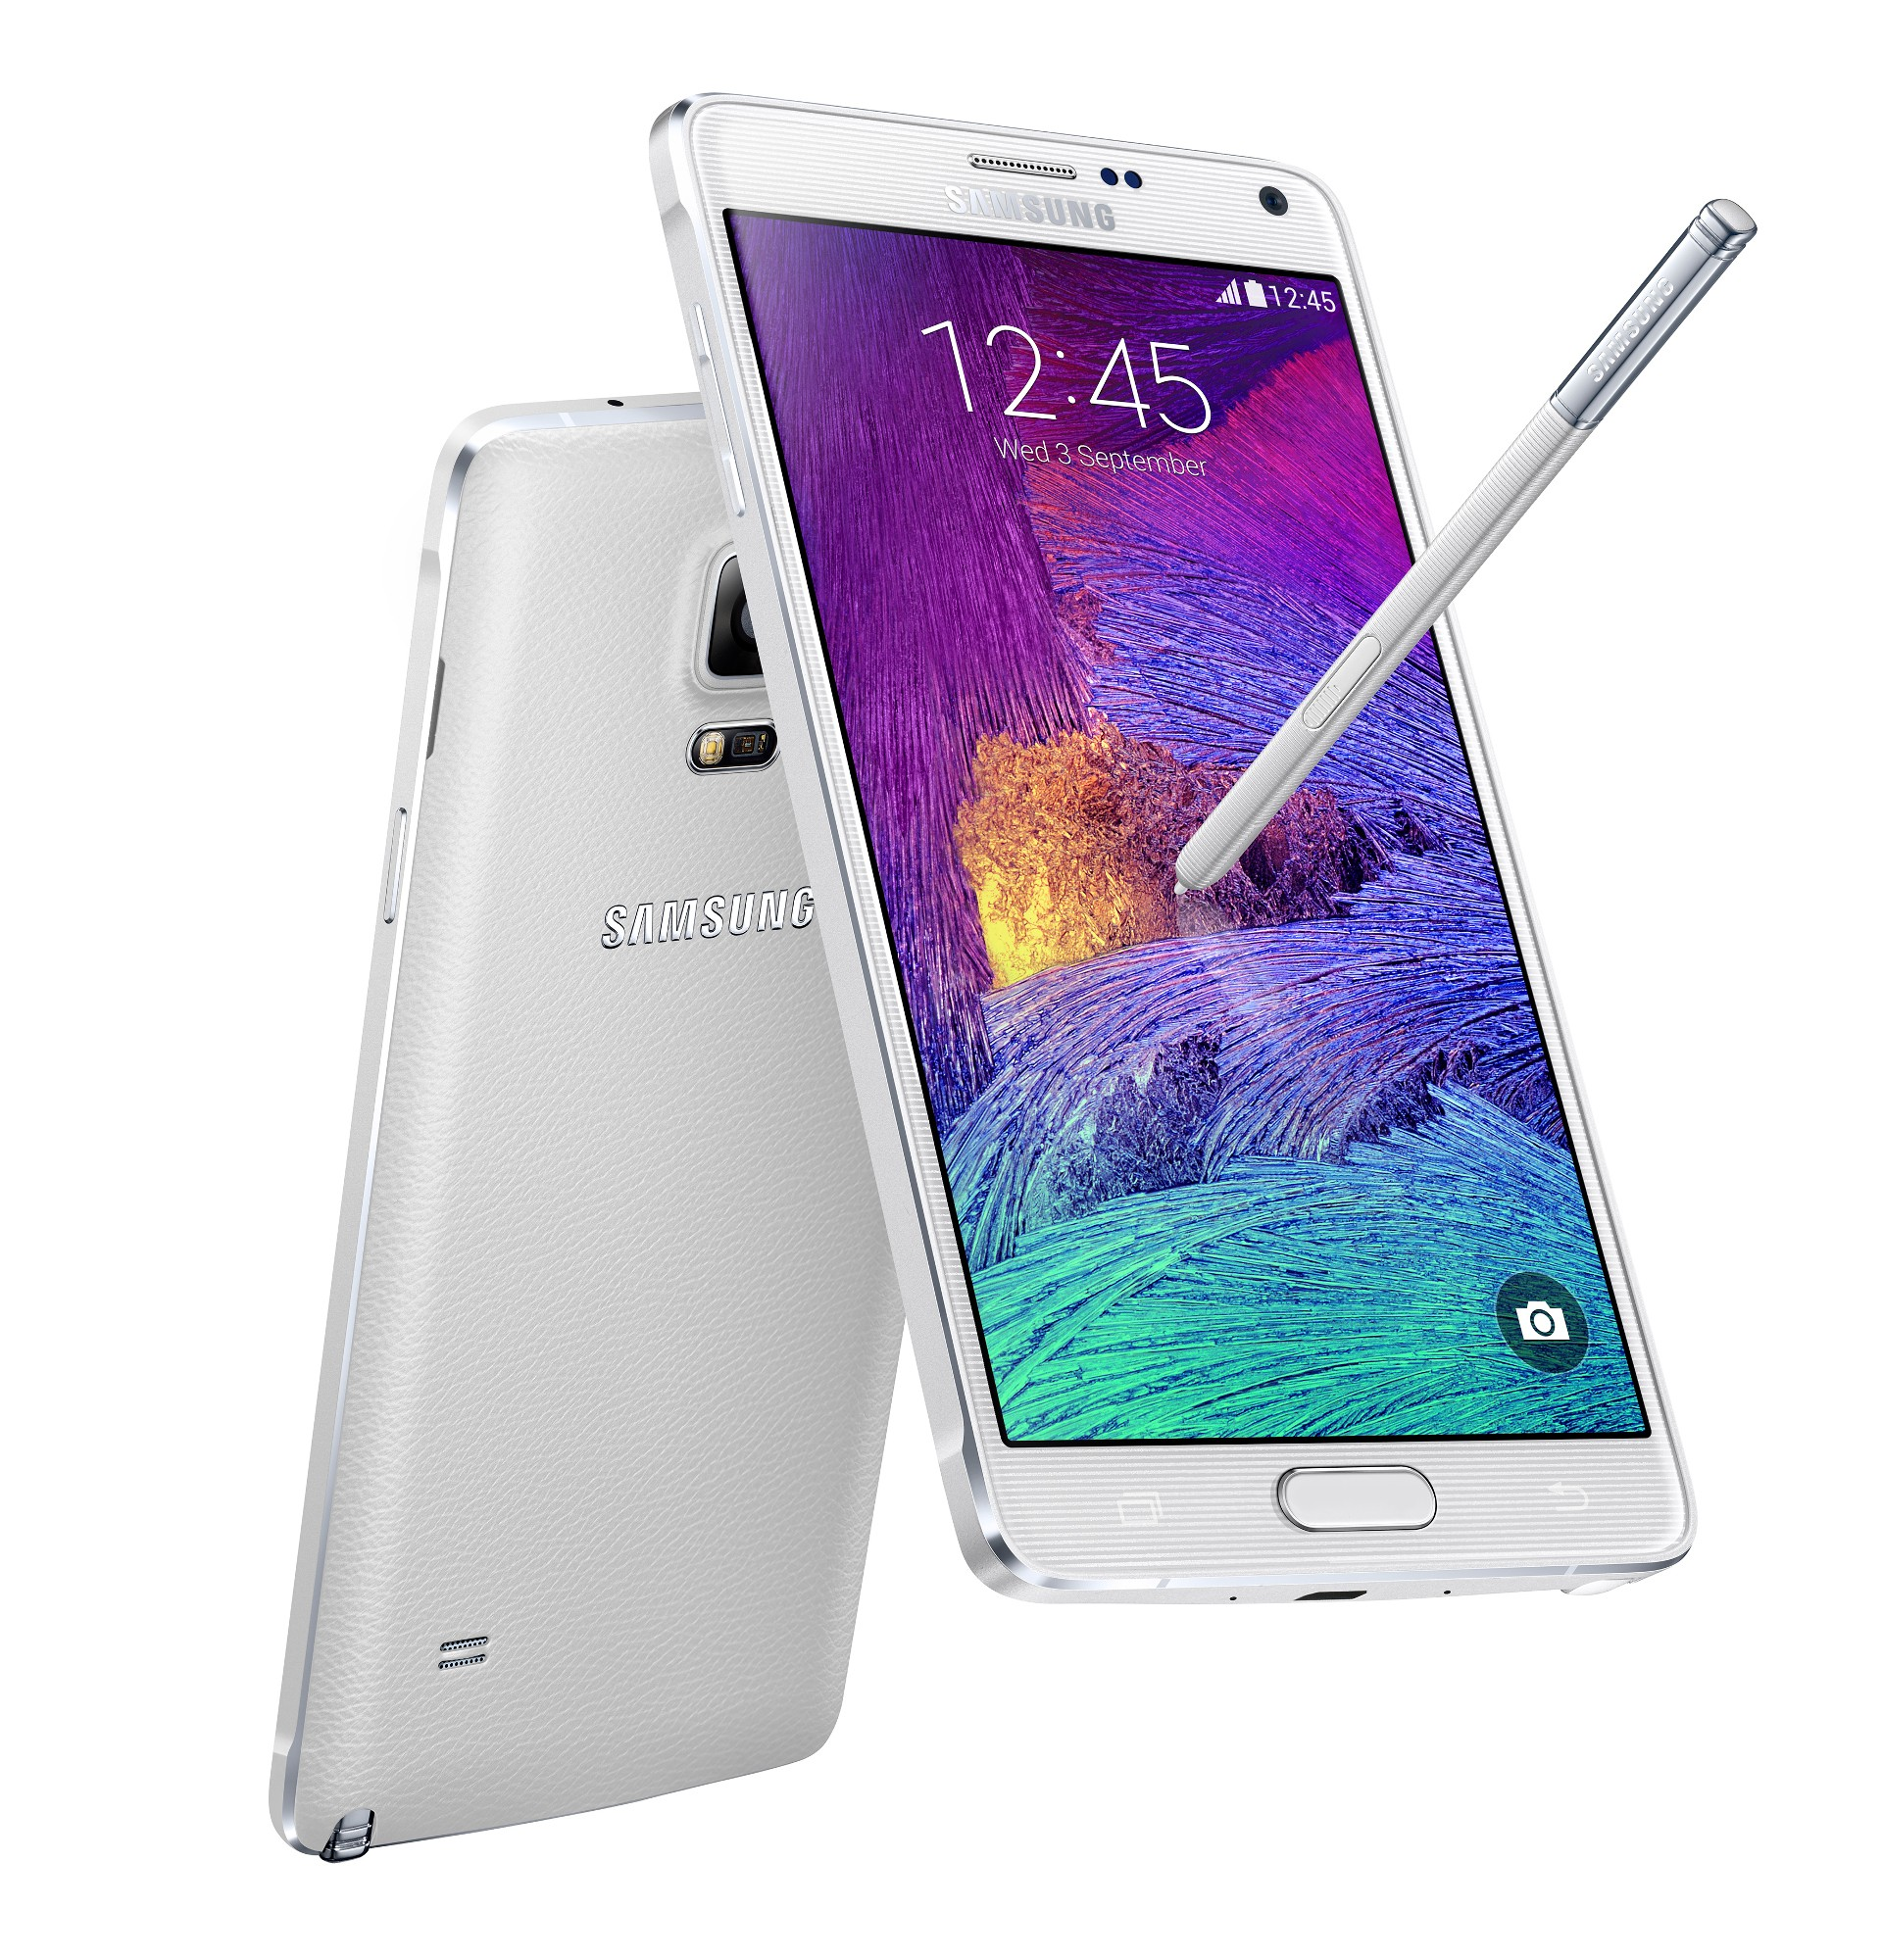 Samsung Galaxy Note 4 and Galaxy Note Edge Unleashed at IFA 2014 457525 2 - TOP 10 : Smartphones of 2014